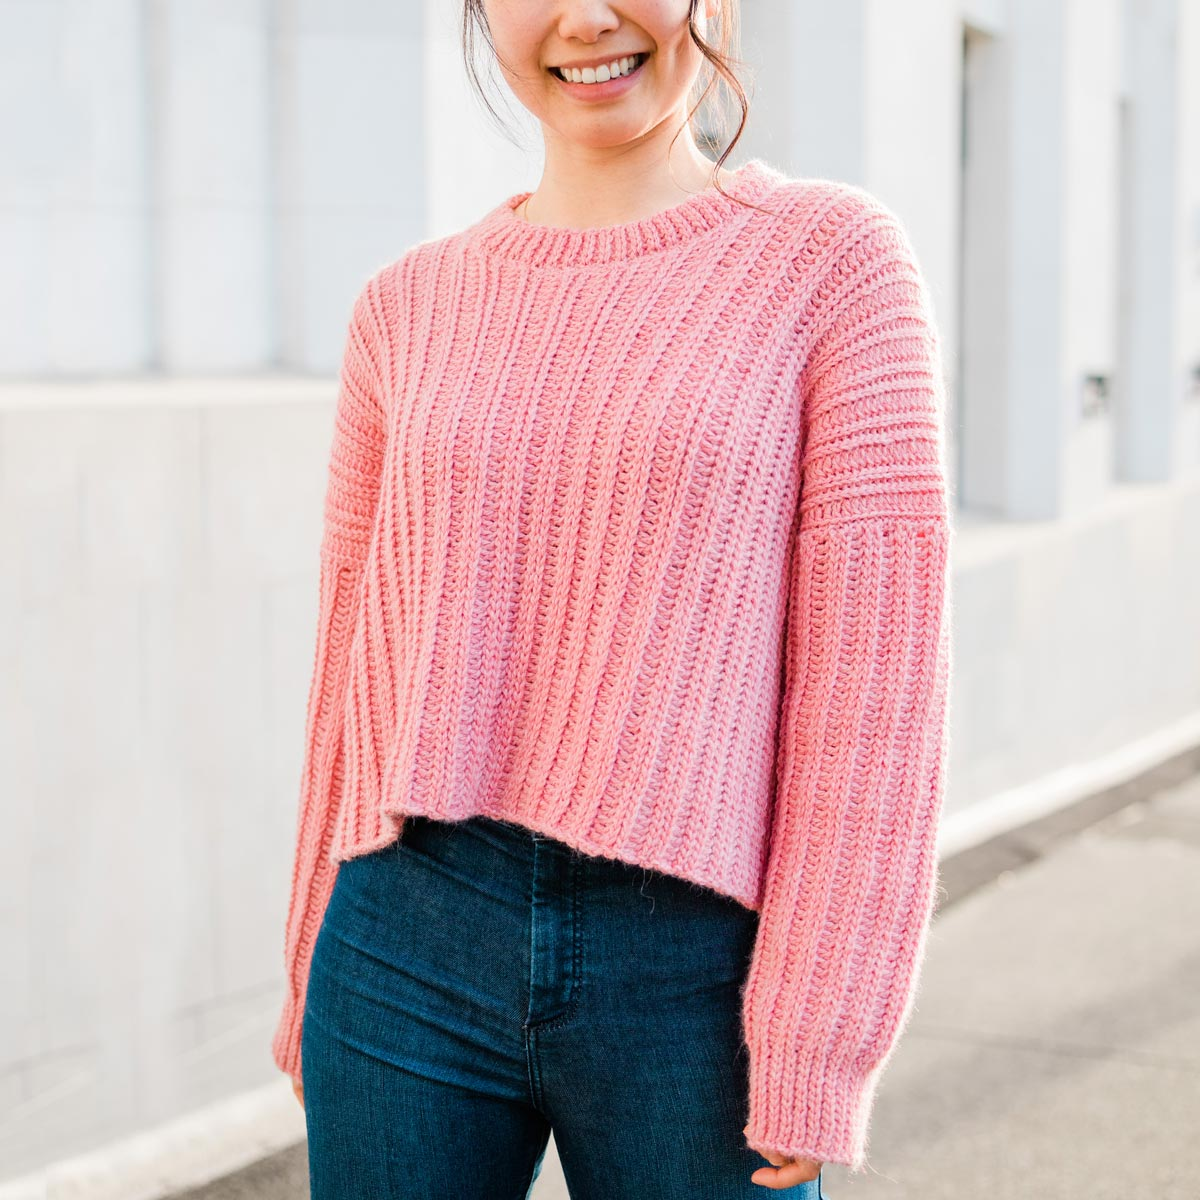 pink ribbed ccropped rochet sweater with loose sleeves